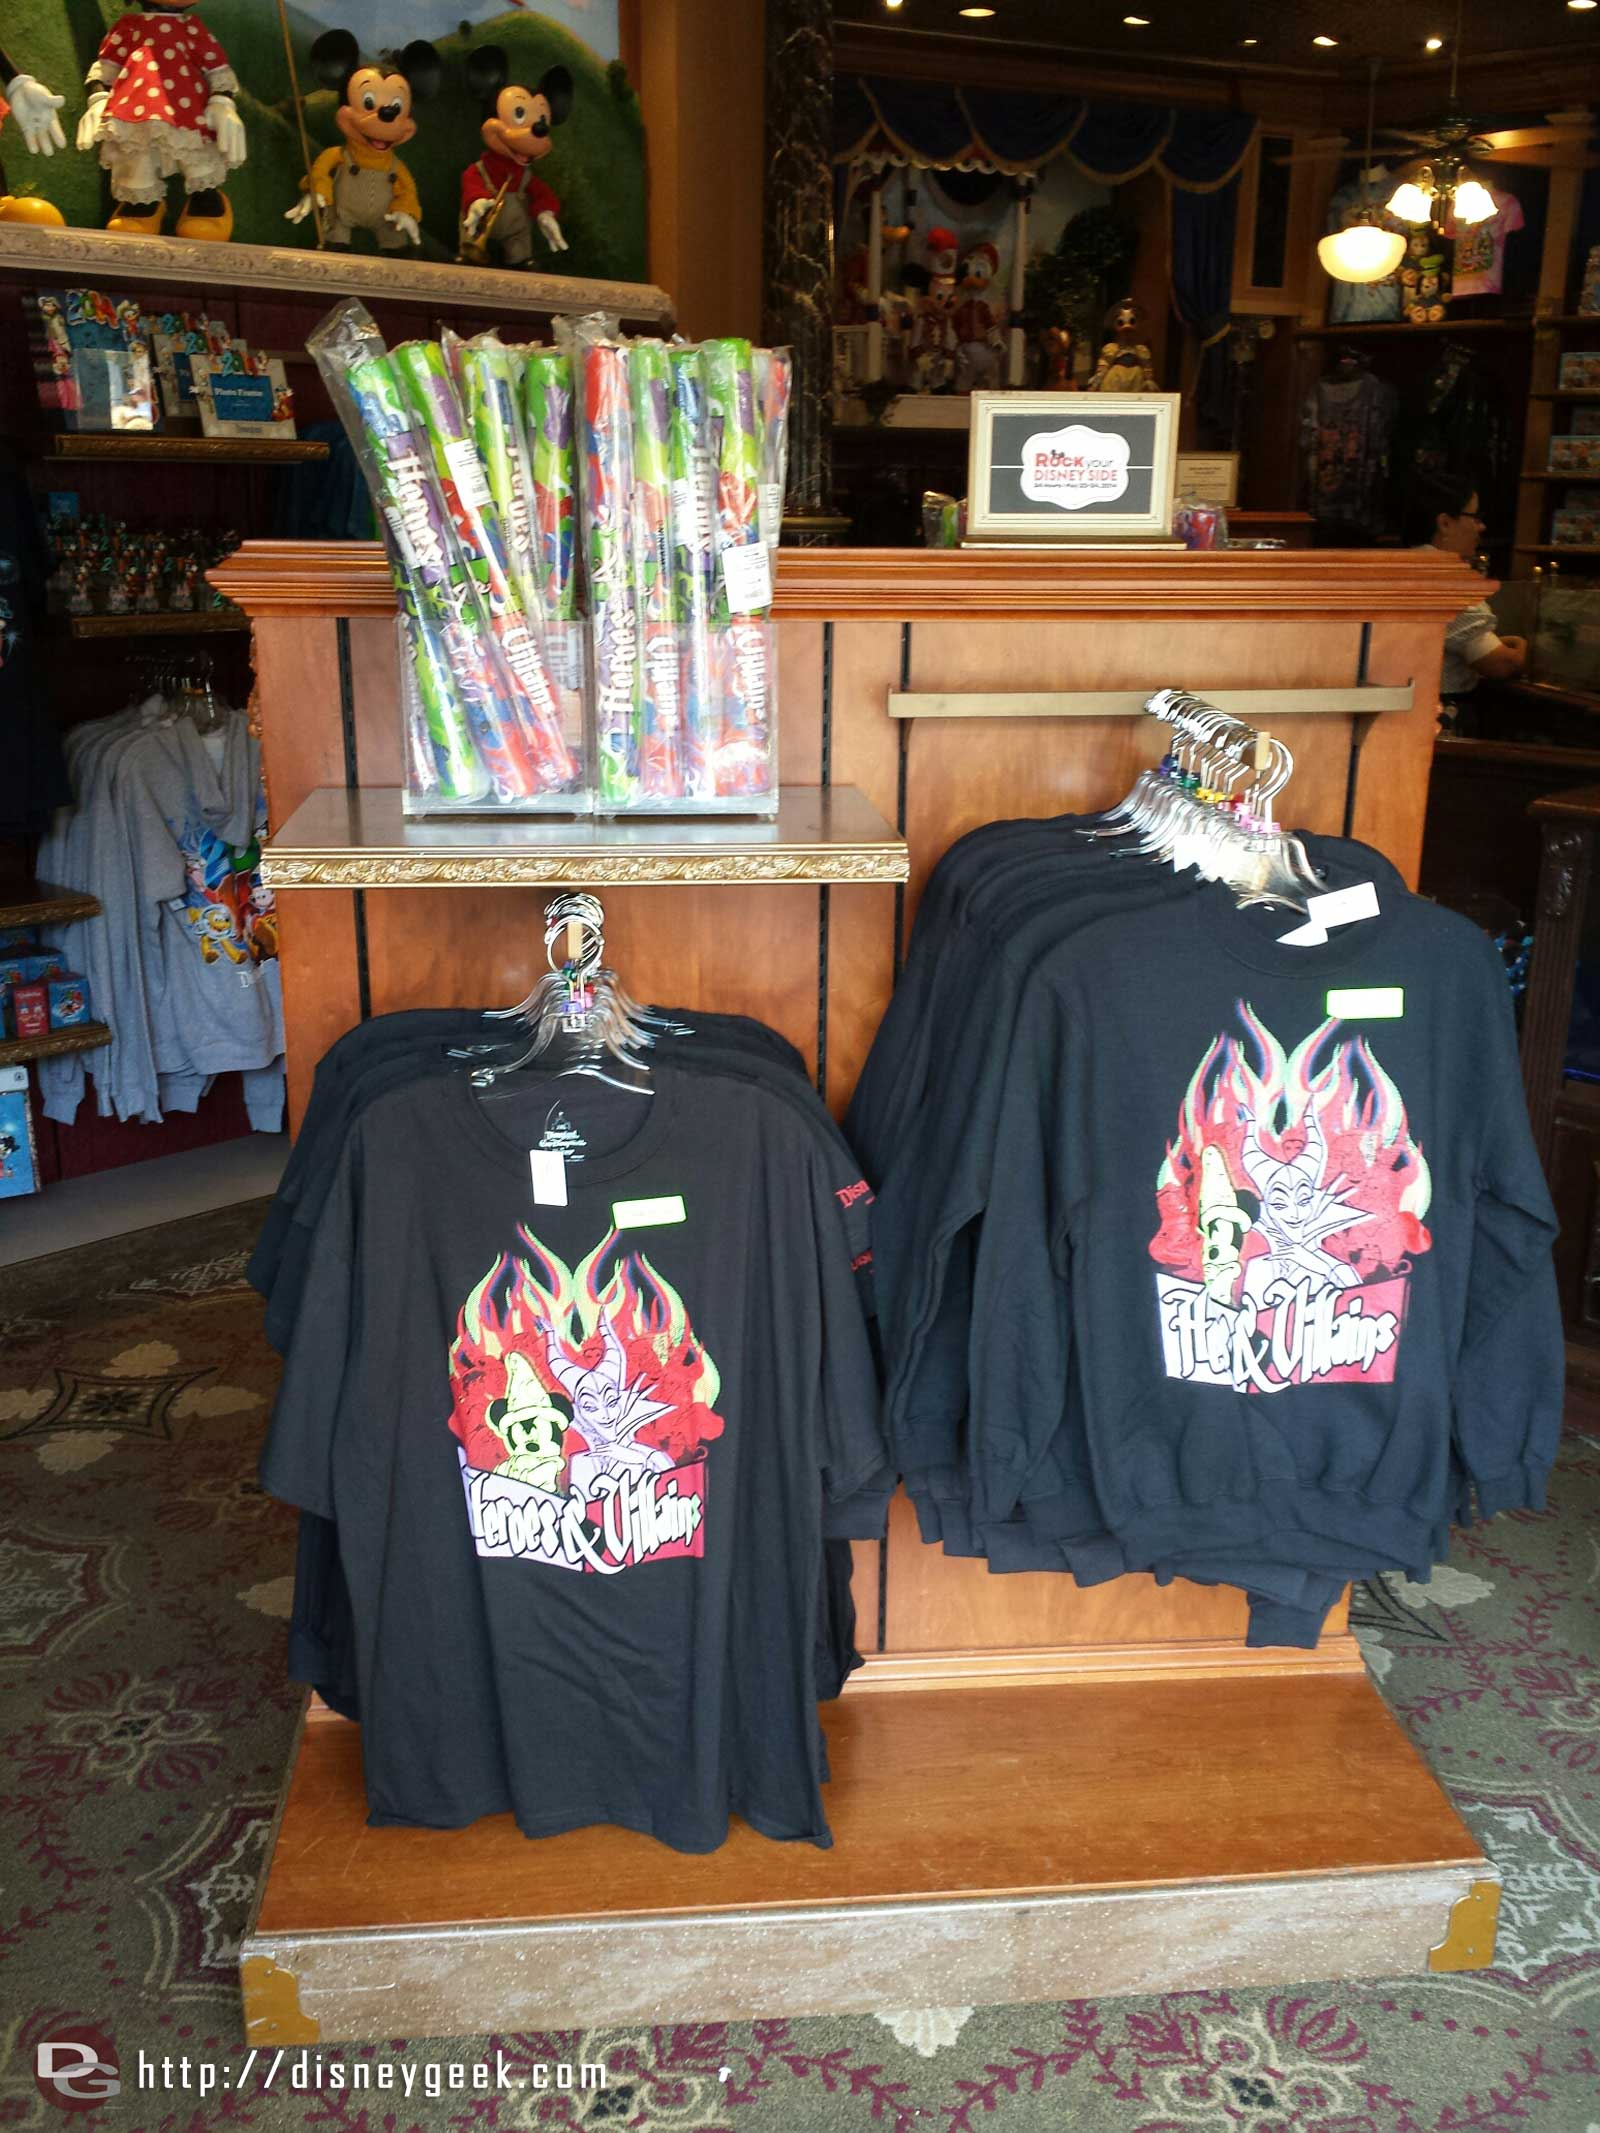 Heroes & Villains commemorative shirts #Disney24  #DisneySide